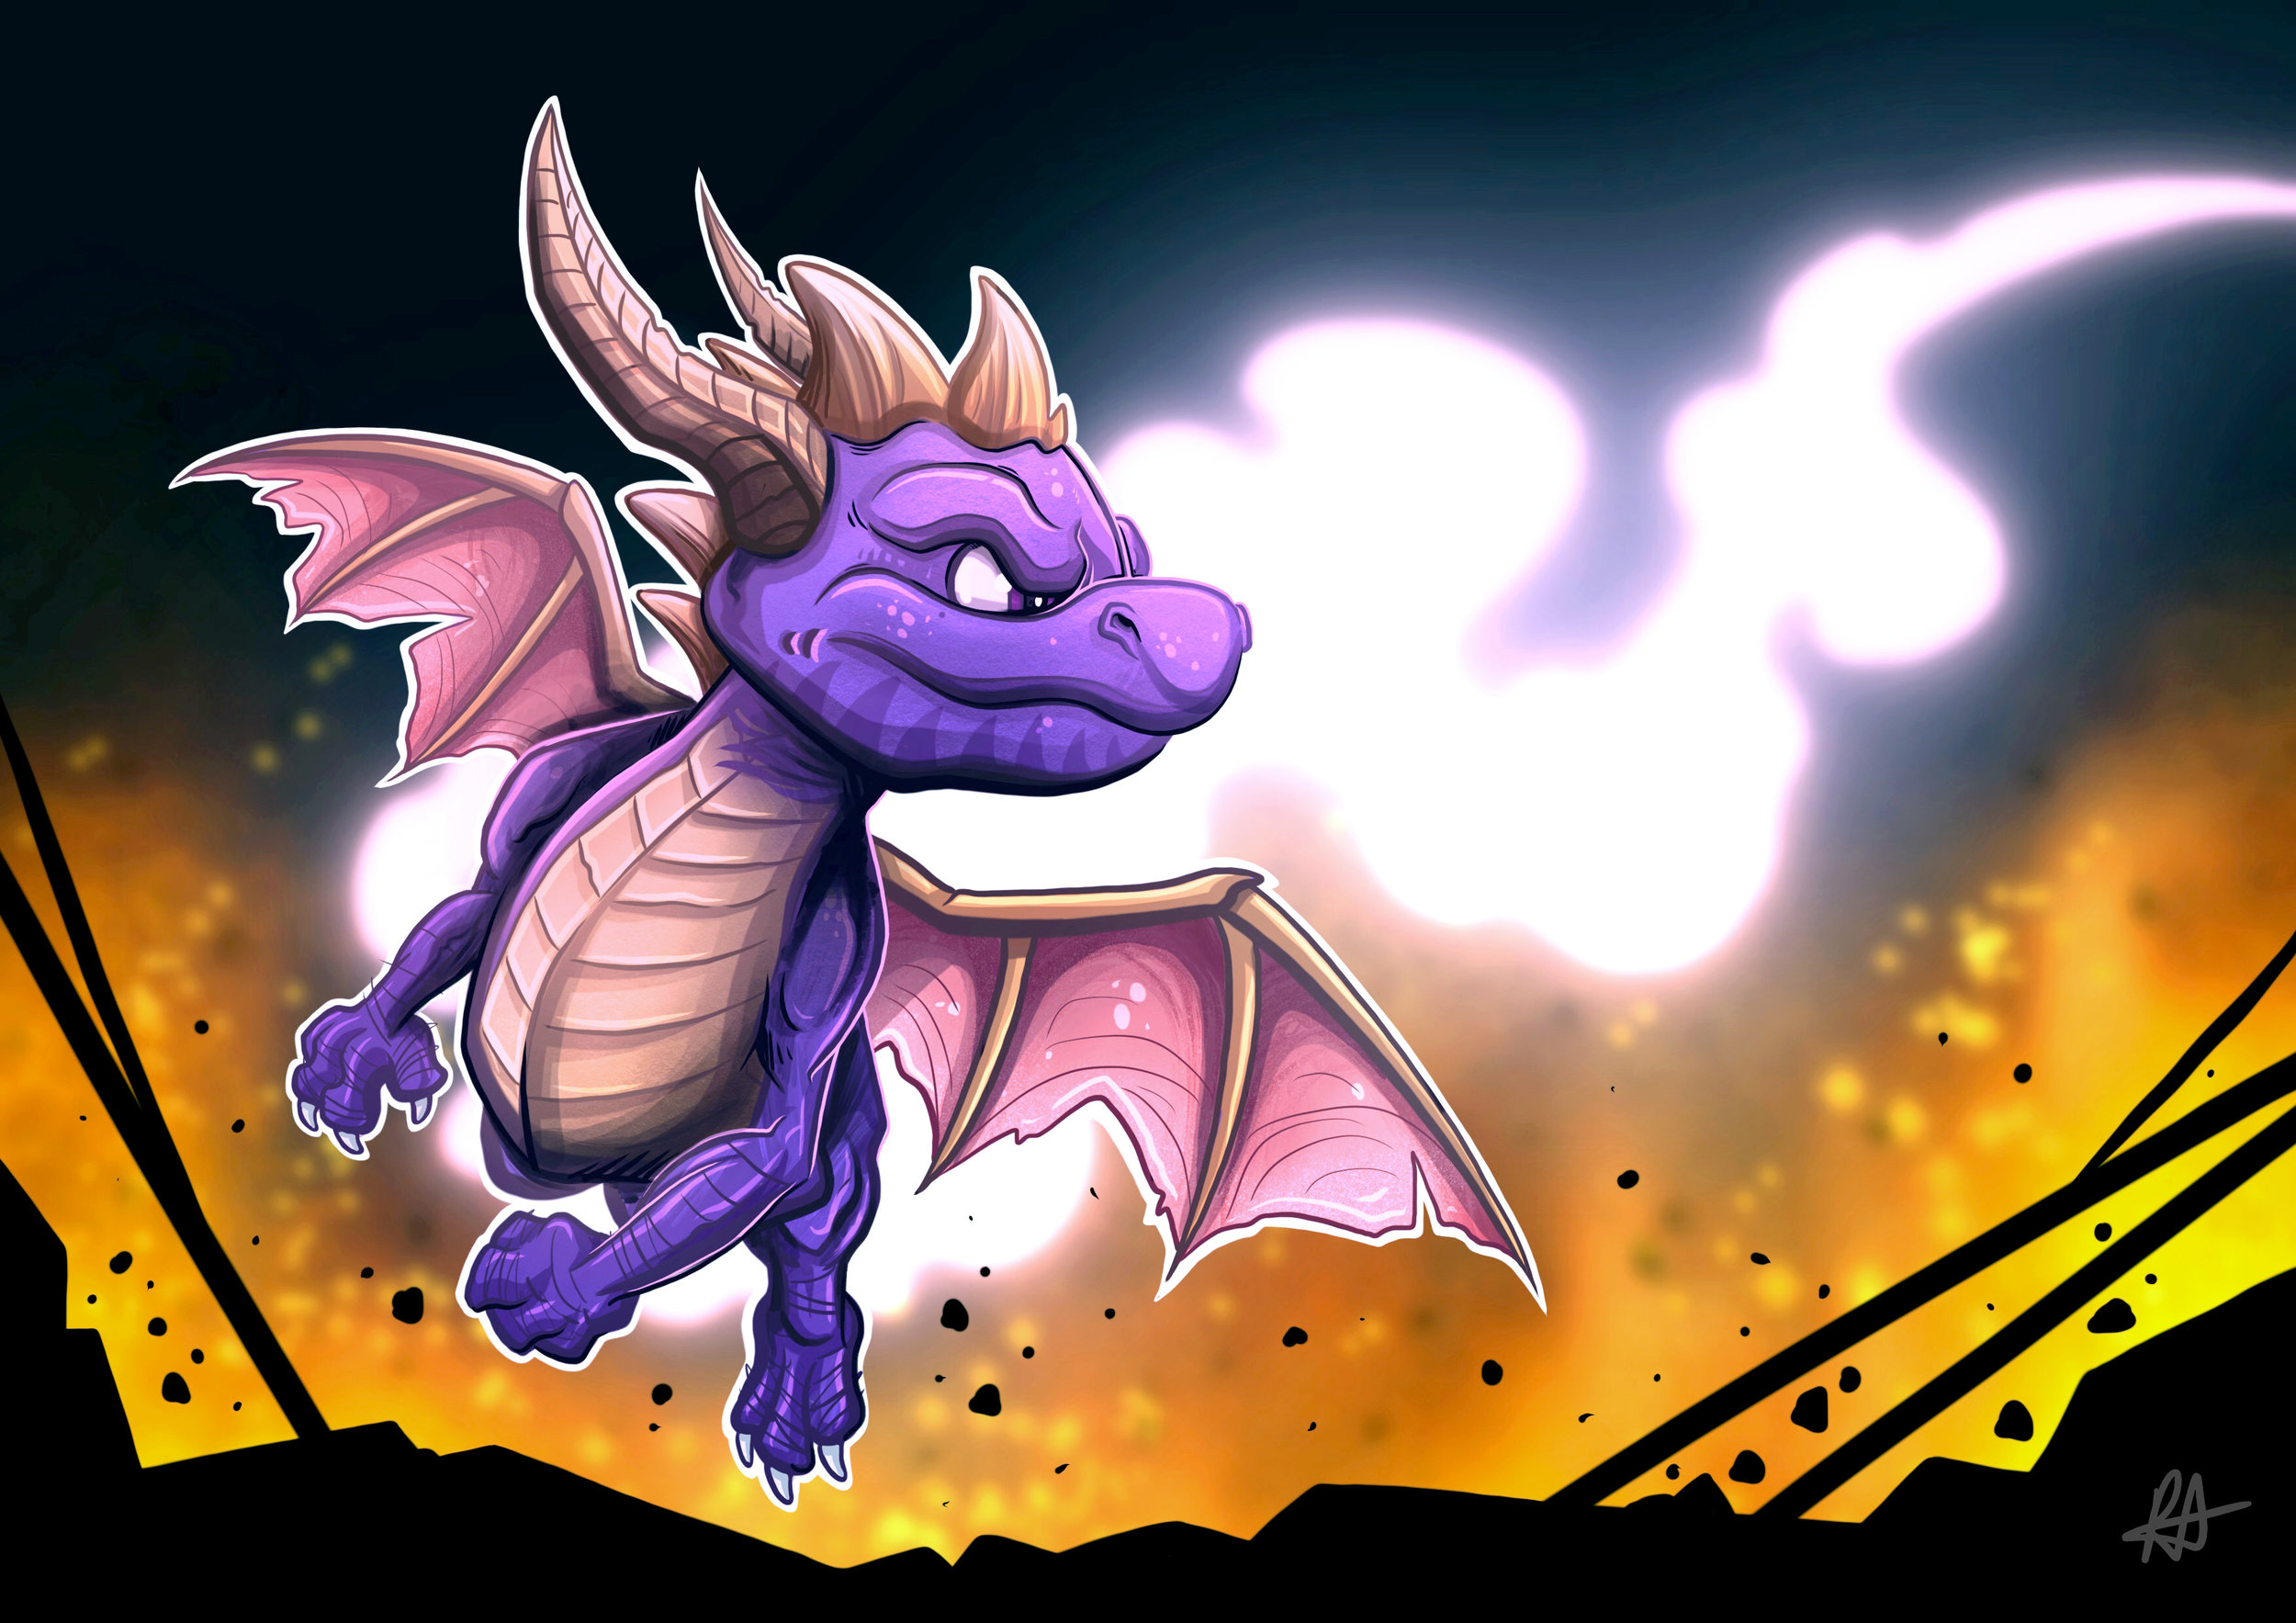 spyro_fan_art.jpg